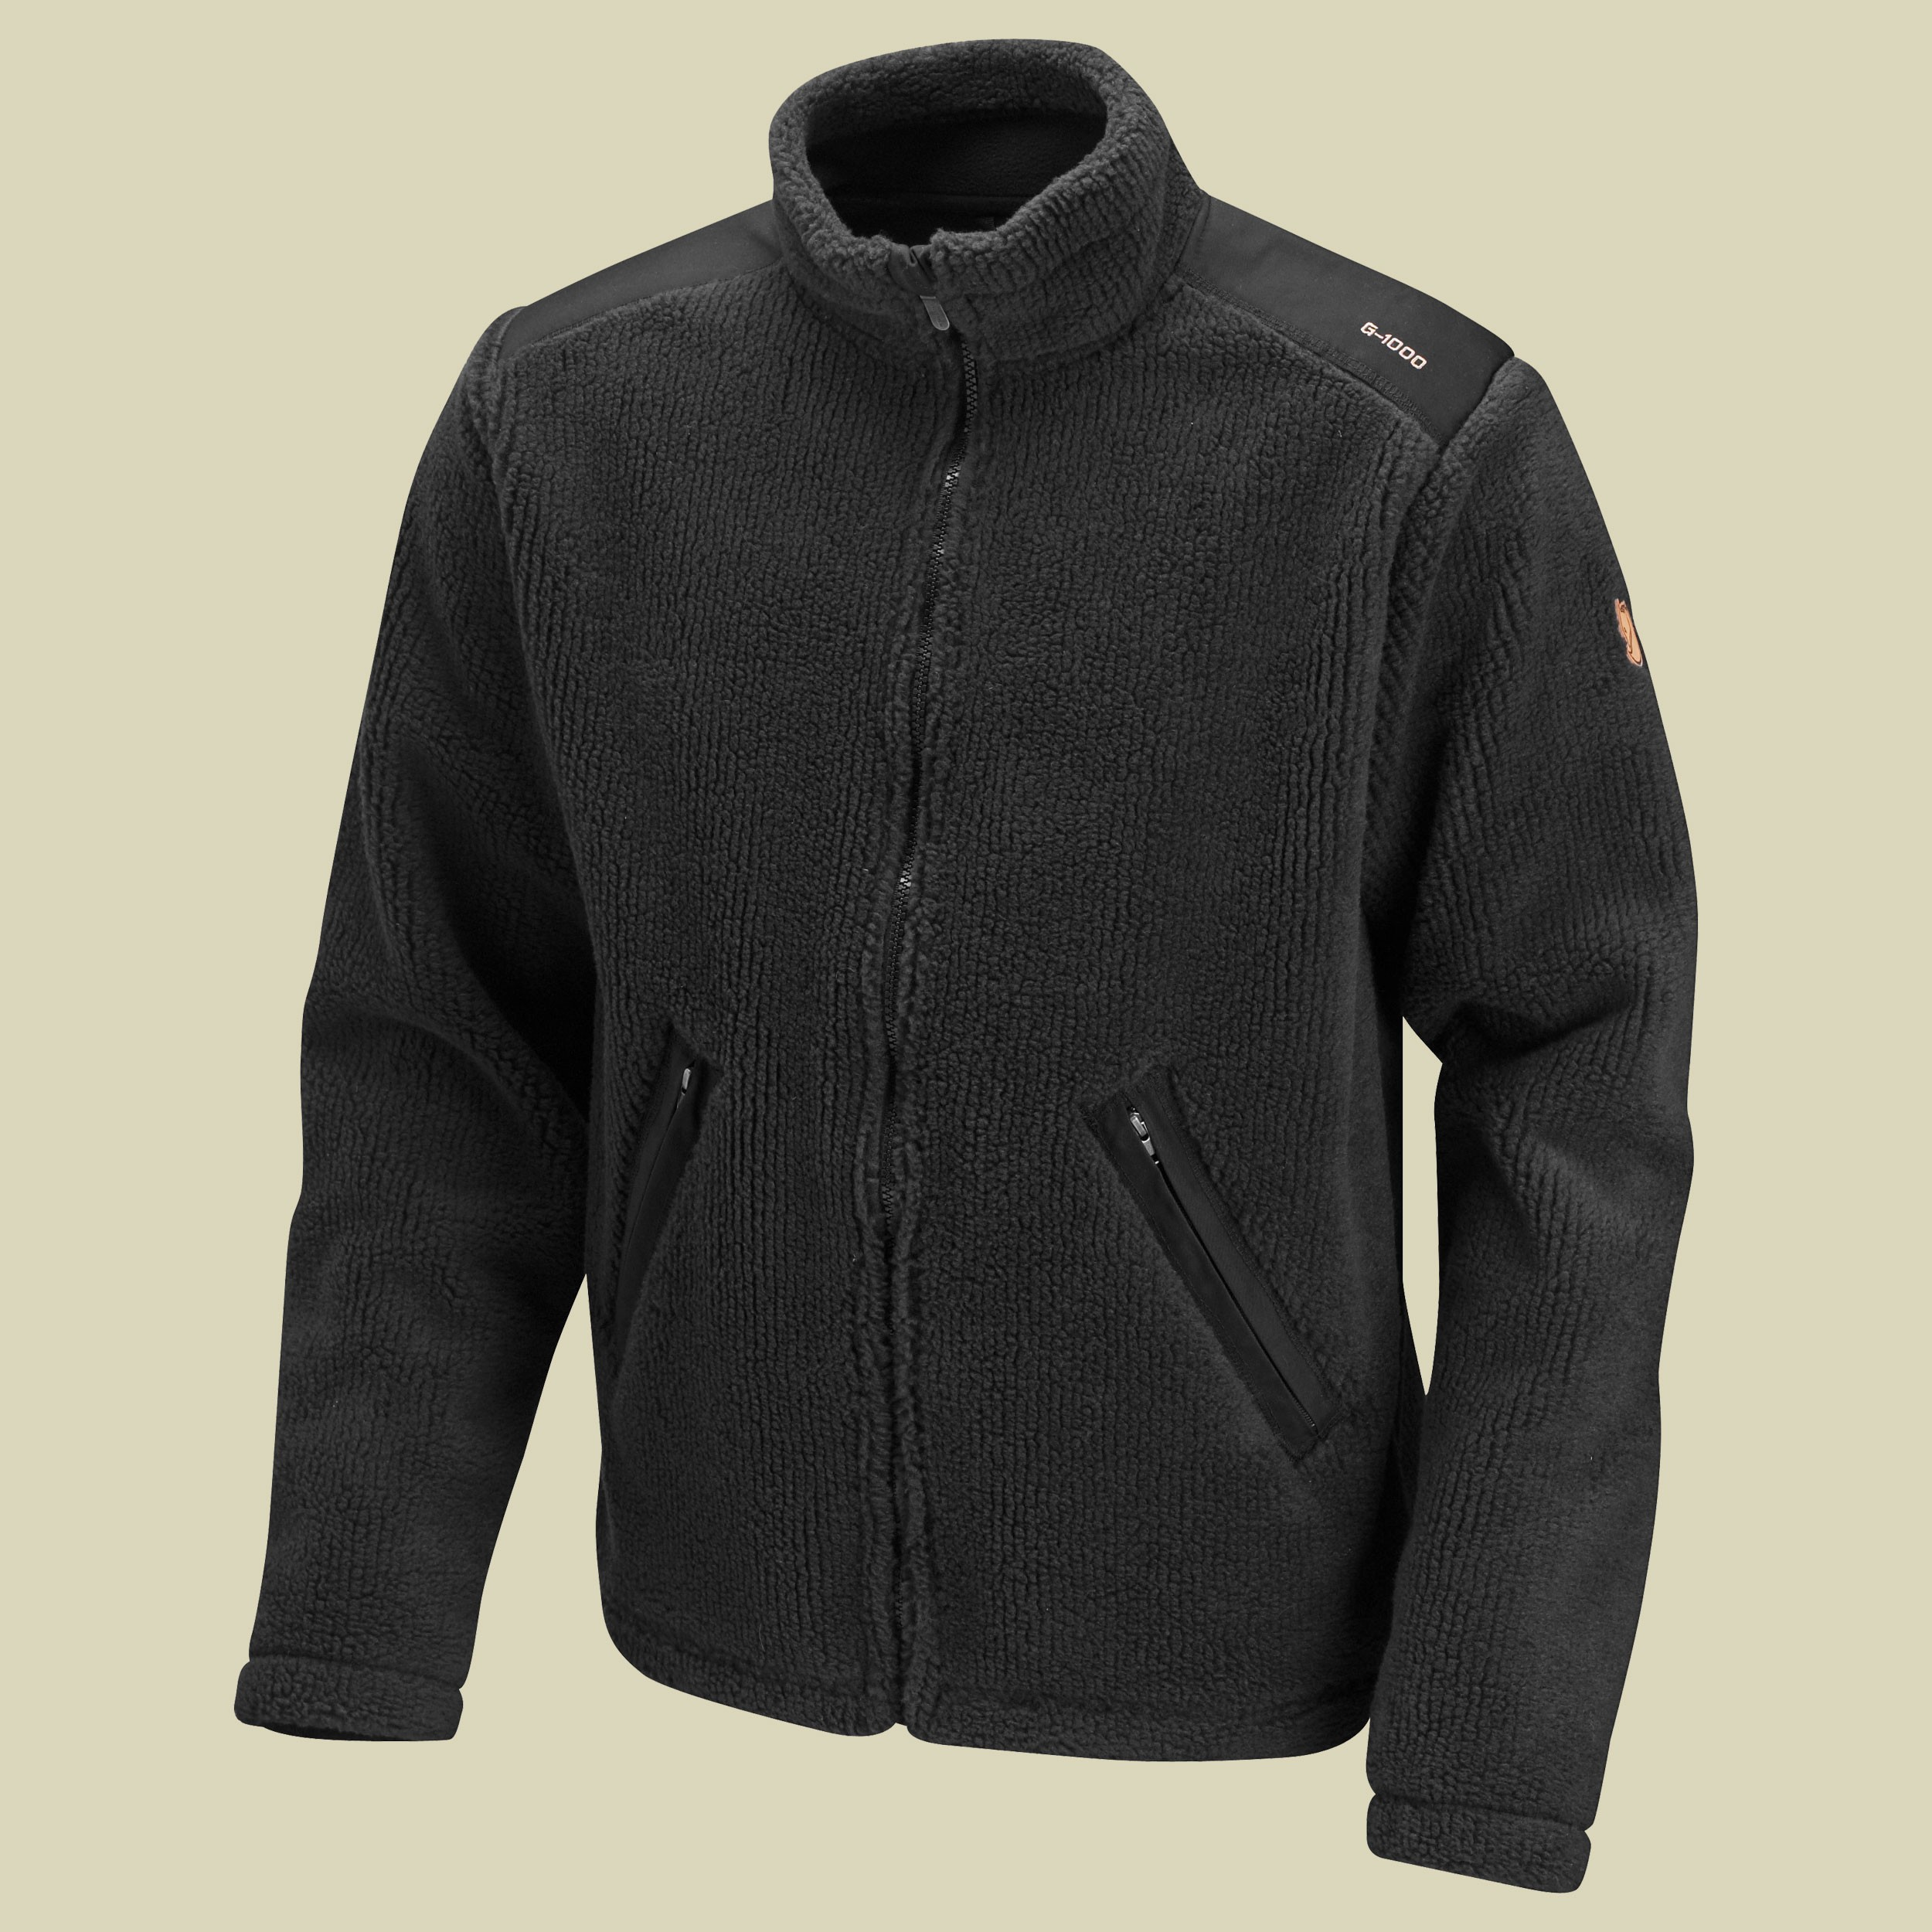 Katmai Jacket Men